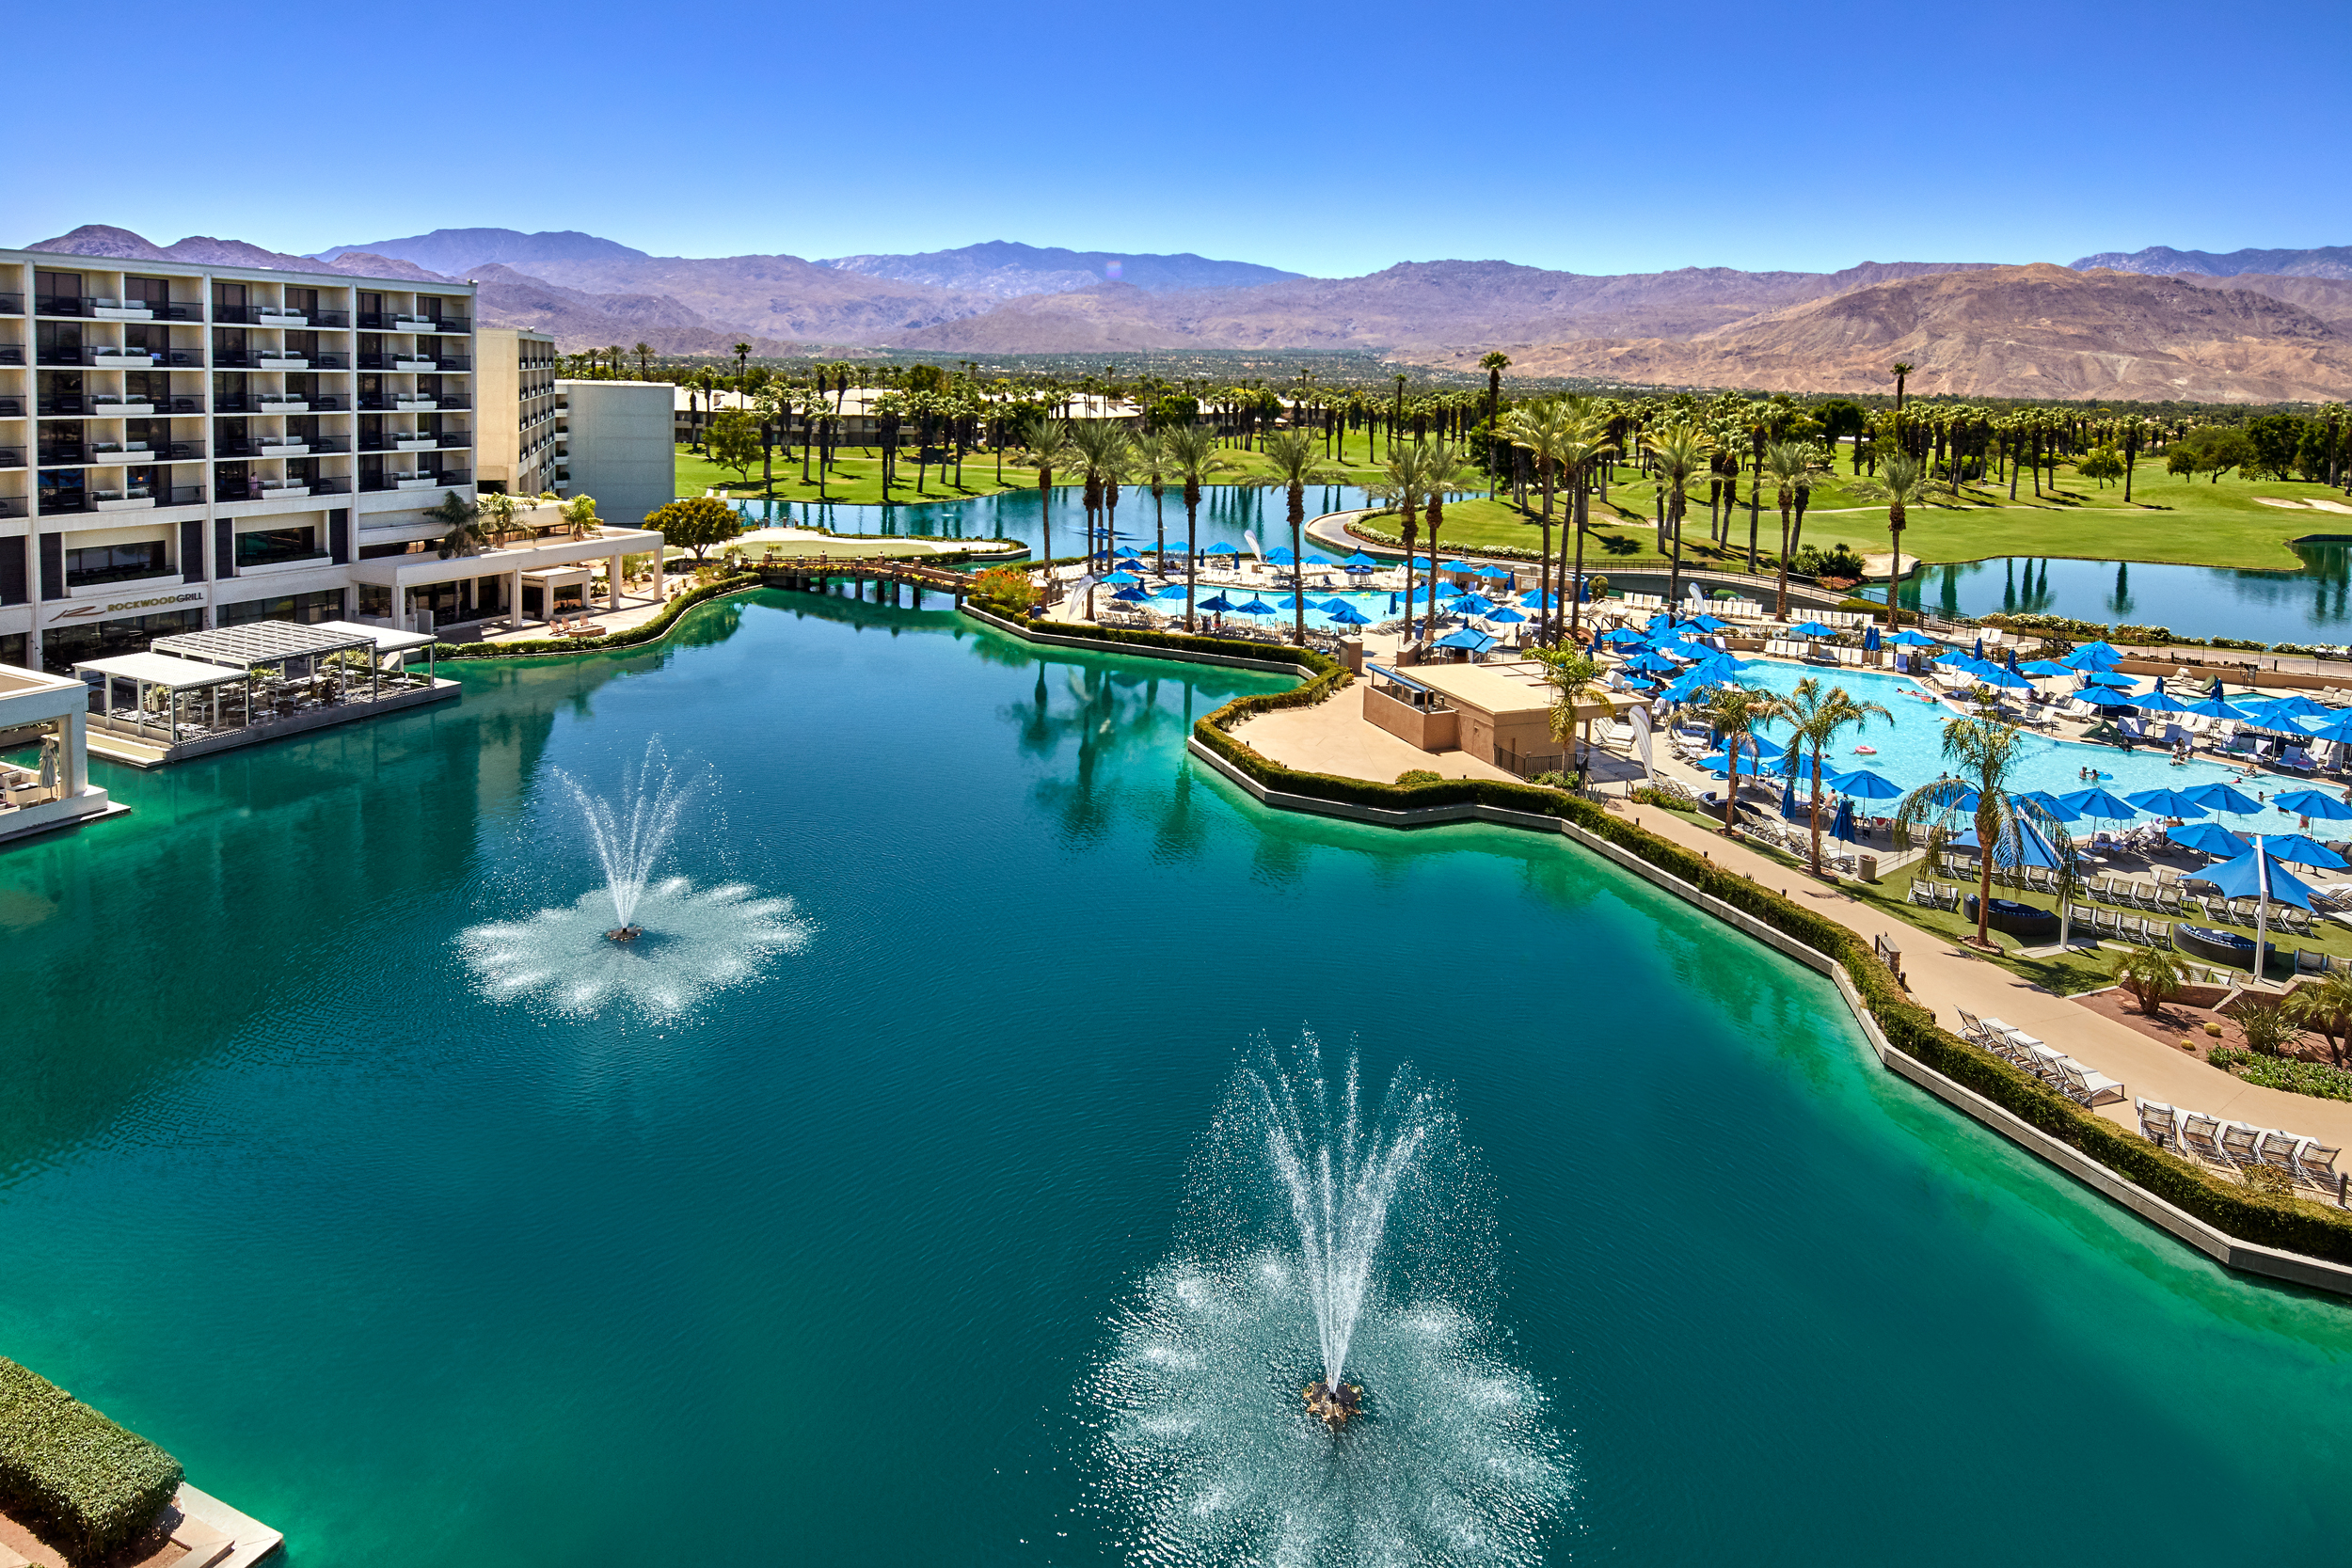 The resort has 18 acres of lakes and waterways.